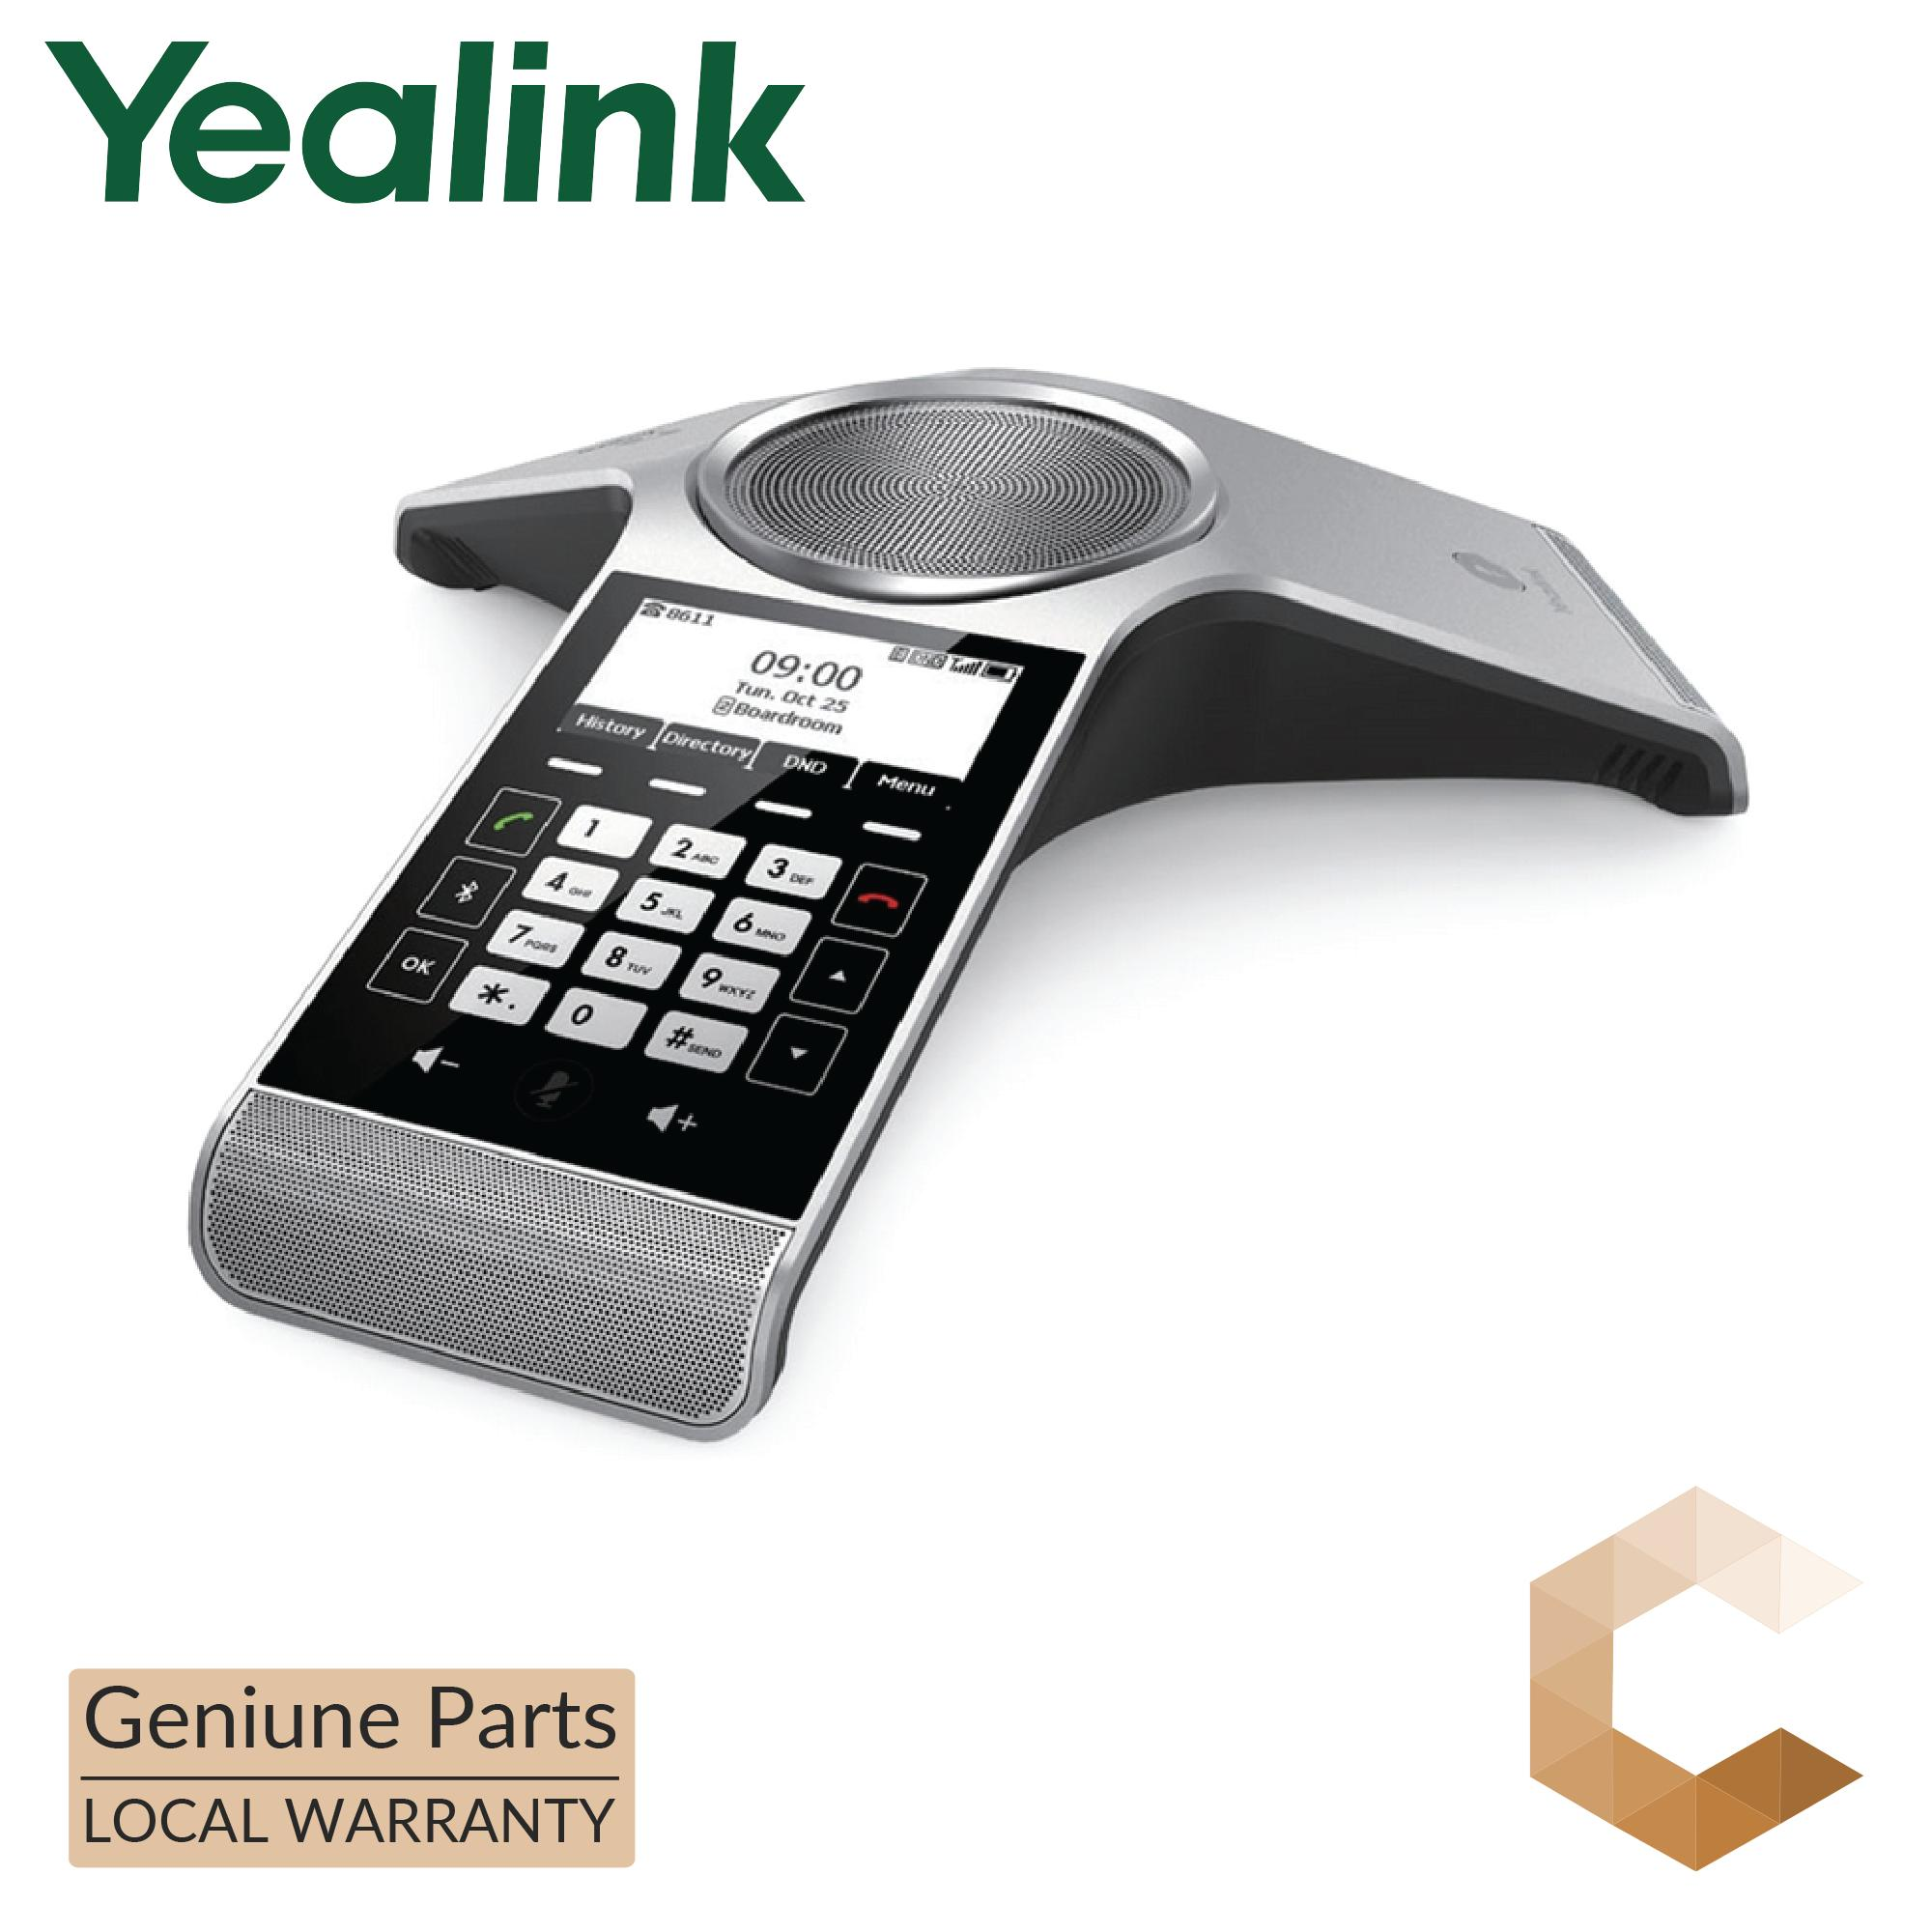 Yealink - Buy Yealink at Best Price in Singapore | redmart